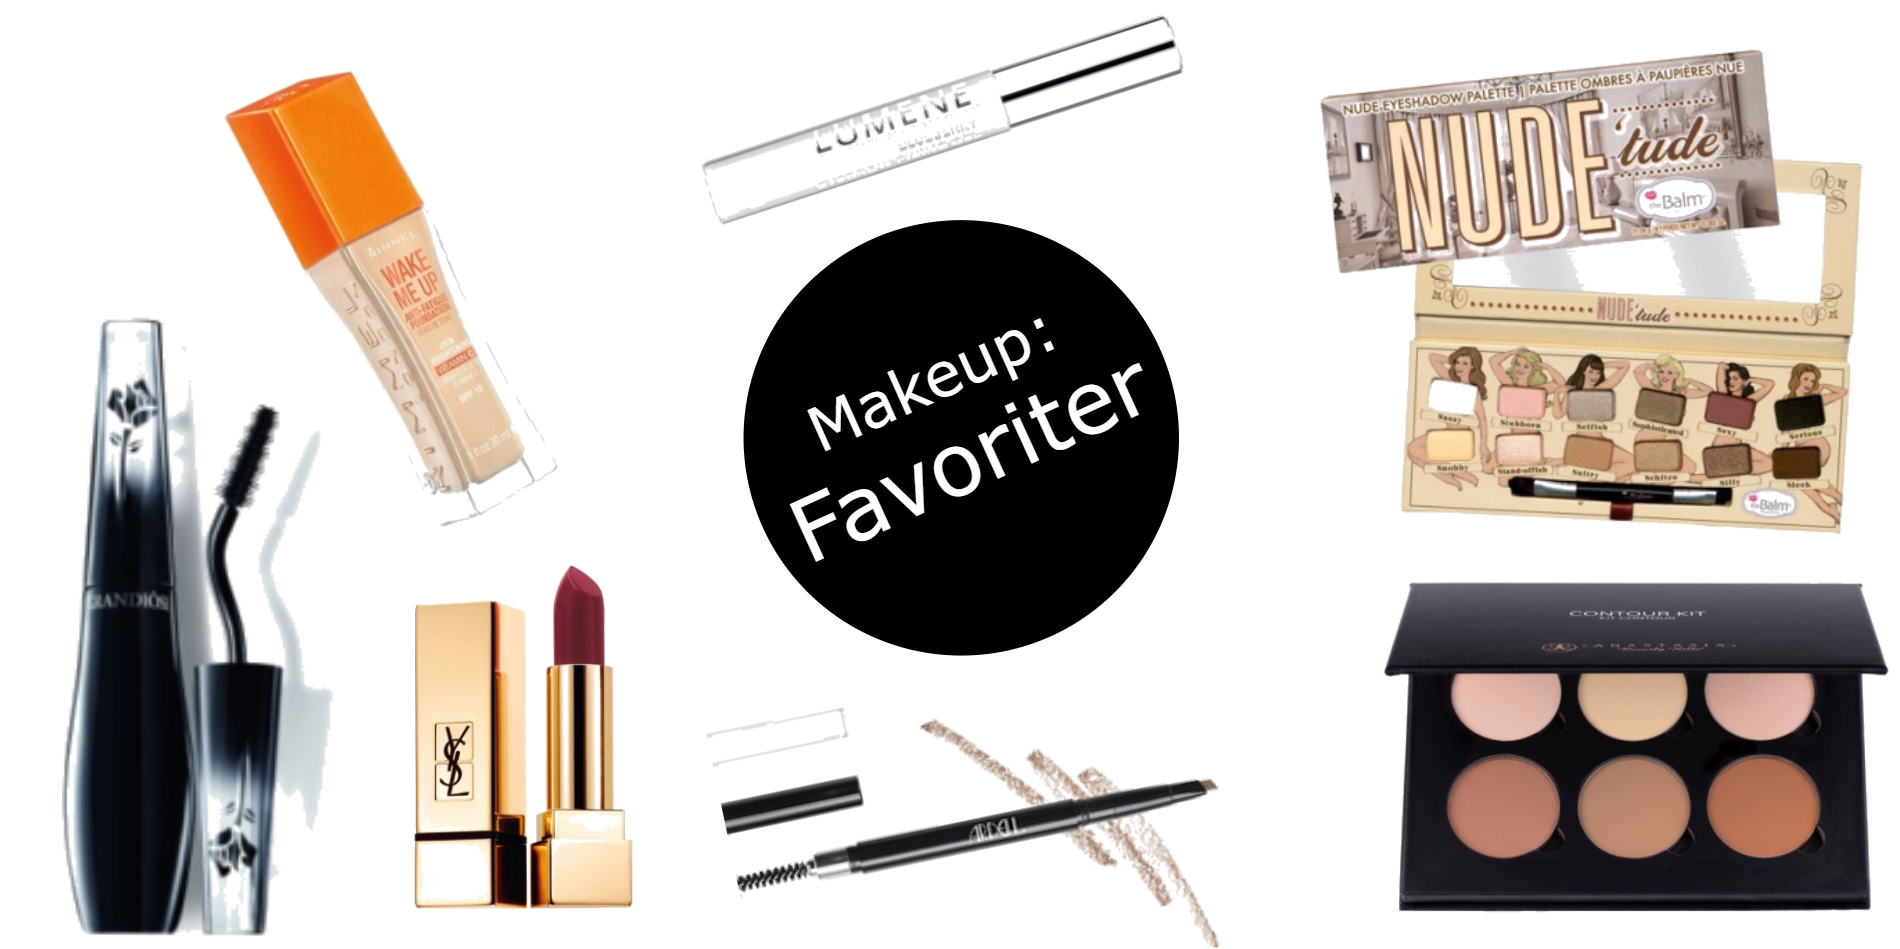 Makeup: Favoriter